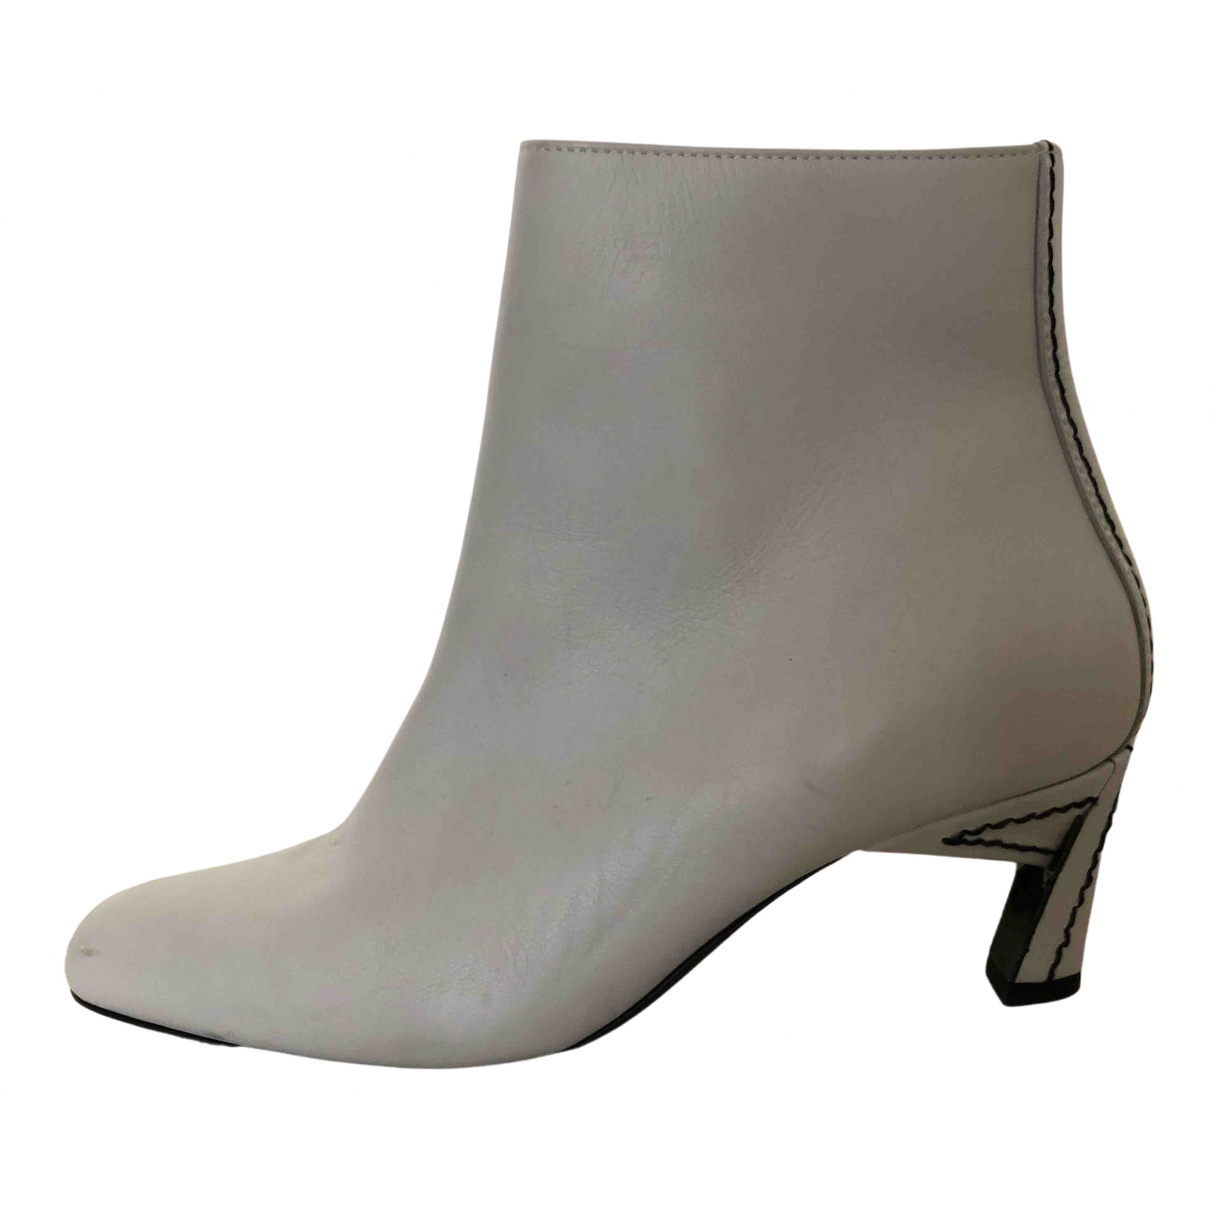 Marni N Grey Leather Ankle boots for Women 37 EU